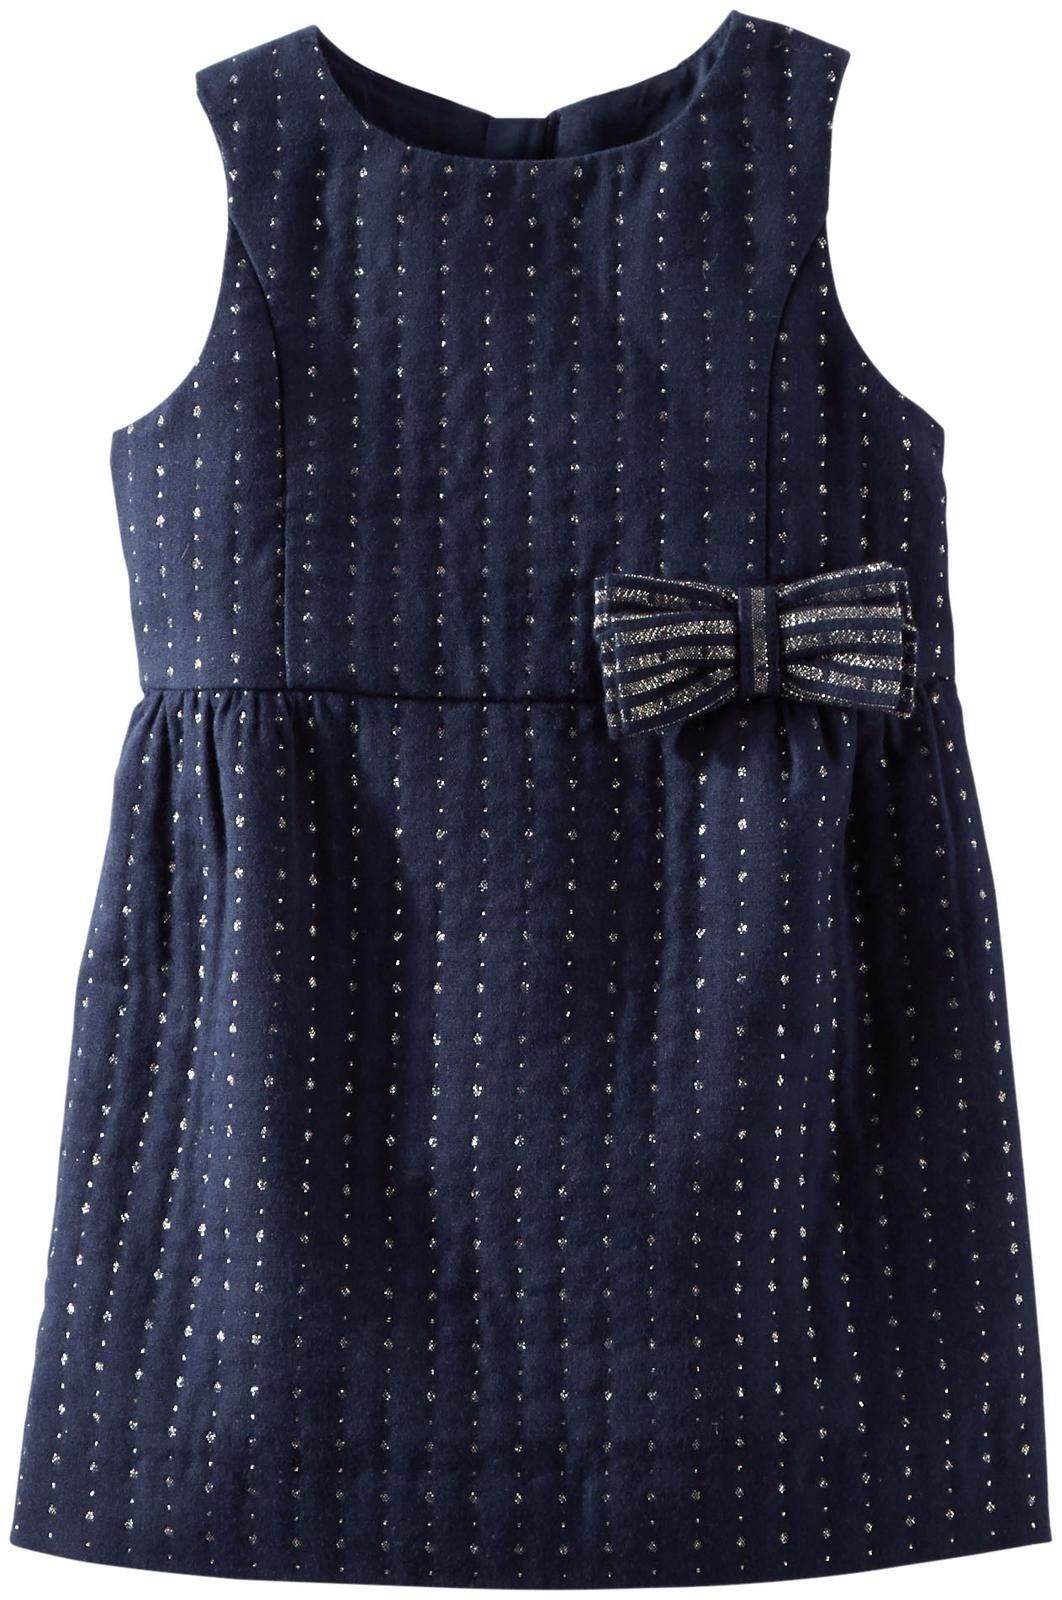 Navy Woven Baby Dress from OshKosh B'gosh --Sleeveless dress includes separate diaper cover. Allover tiny polka dots with shimmer threads for a festive look. Zip back. Detailed with bow at the waist.